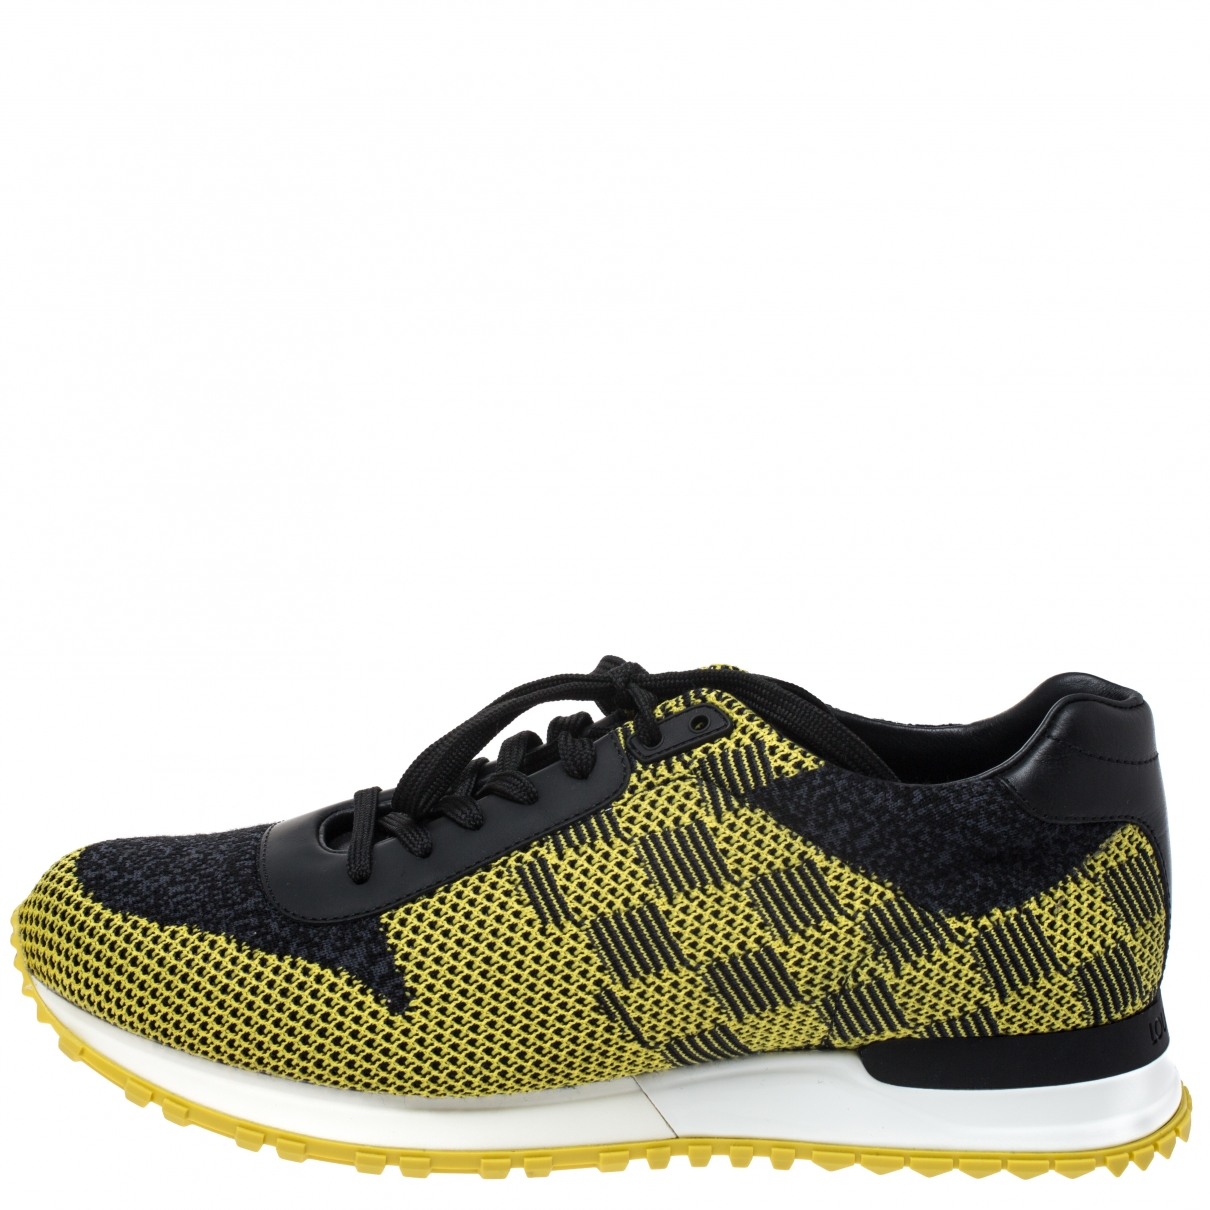 Louis Vuitton Run Away Multicolour Leather Trainers for Men 10 US